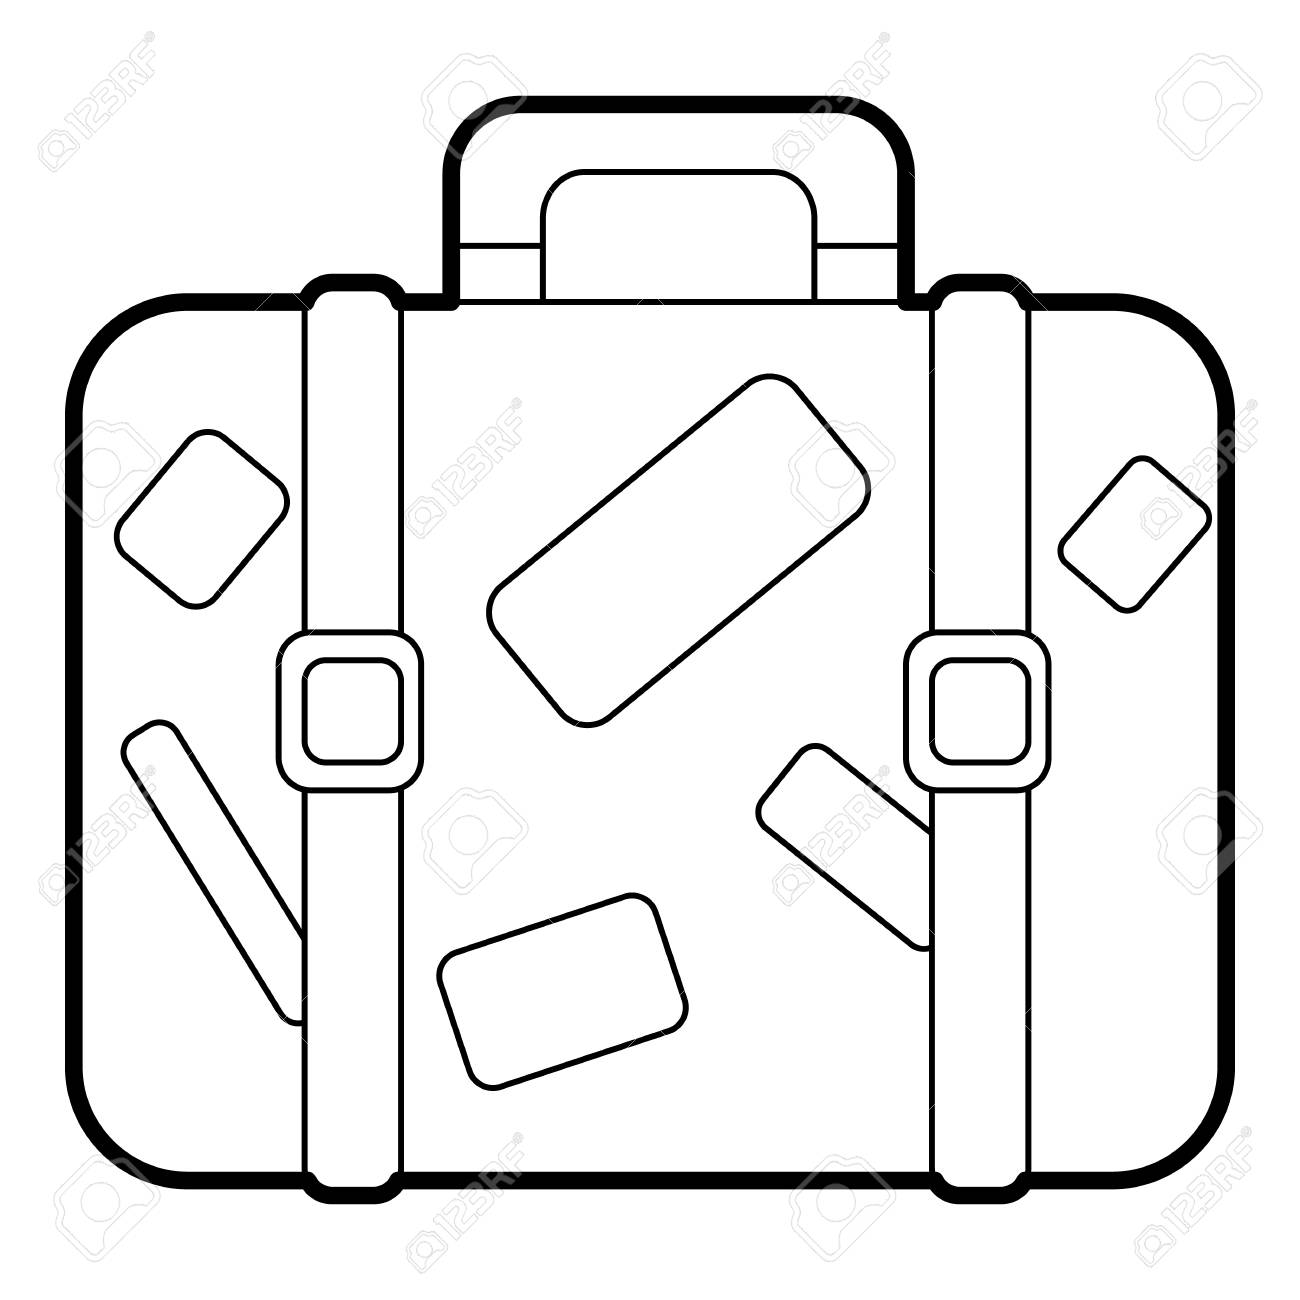 Travel suitcase with stickers icon. Outline illustration of suitcase..